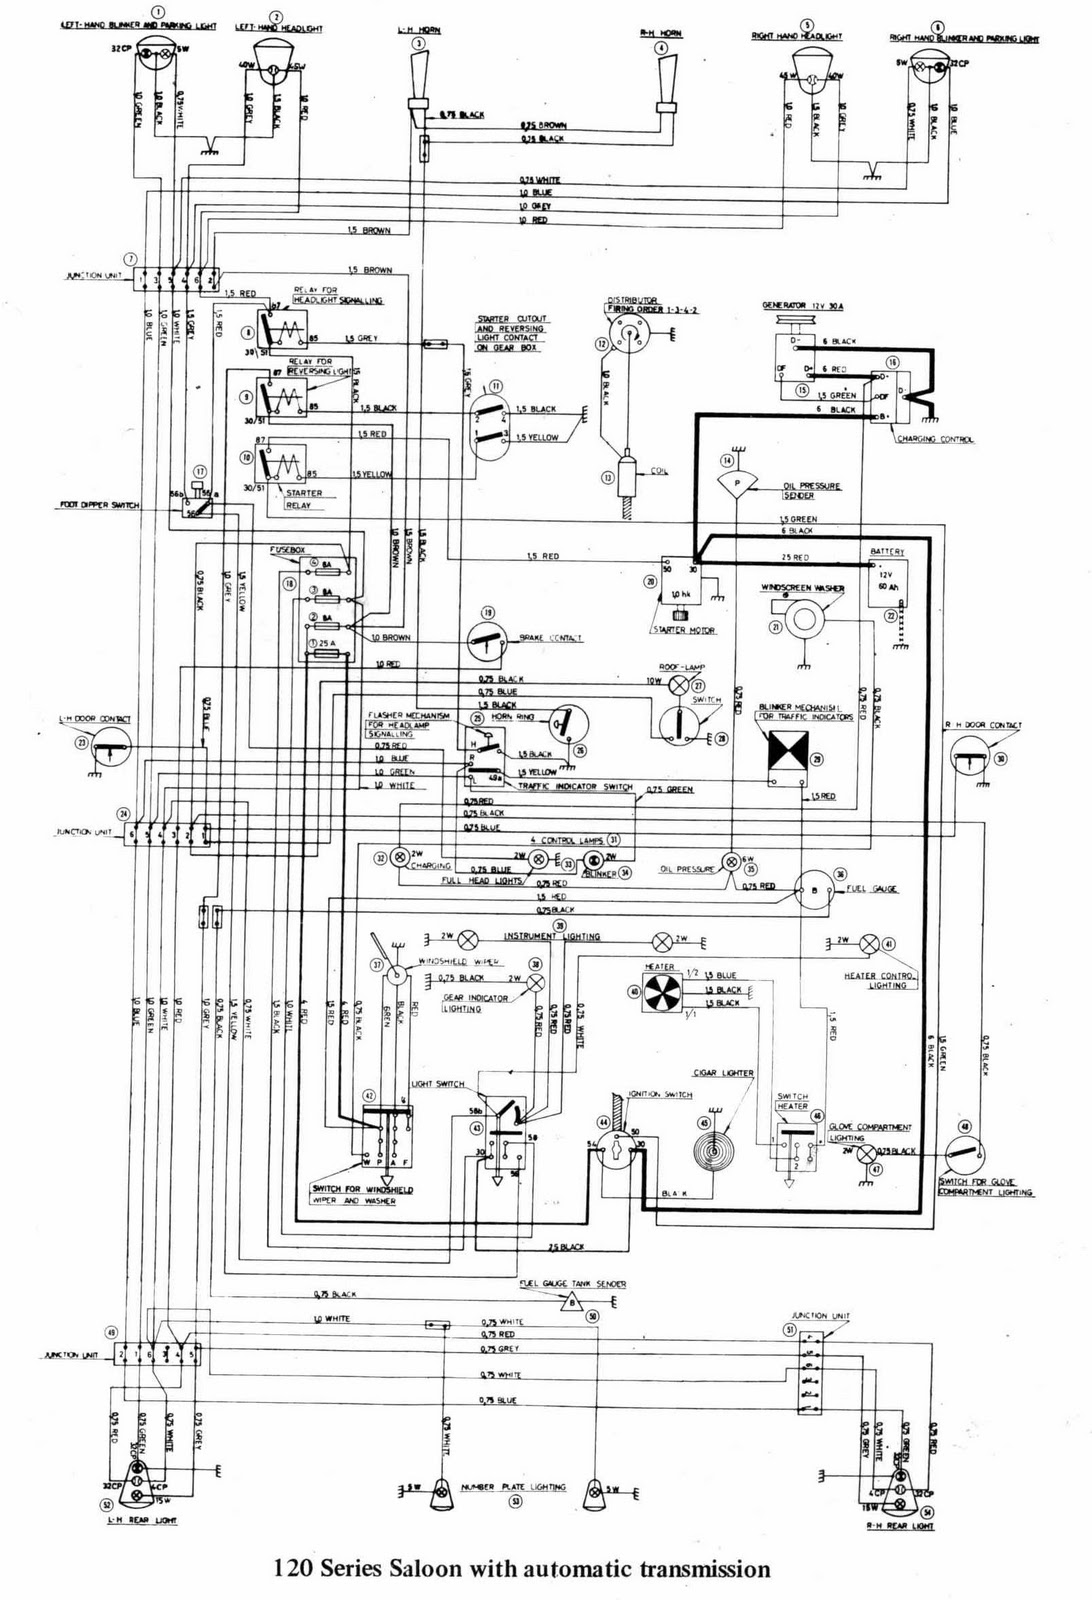 Volvo Fh Radio Wiring Diagram: Best 2005 Volvo Truck Wiring Diagrams  Contemporary - Electrical ,